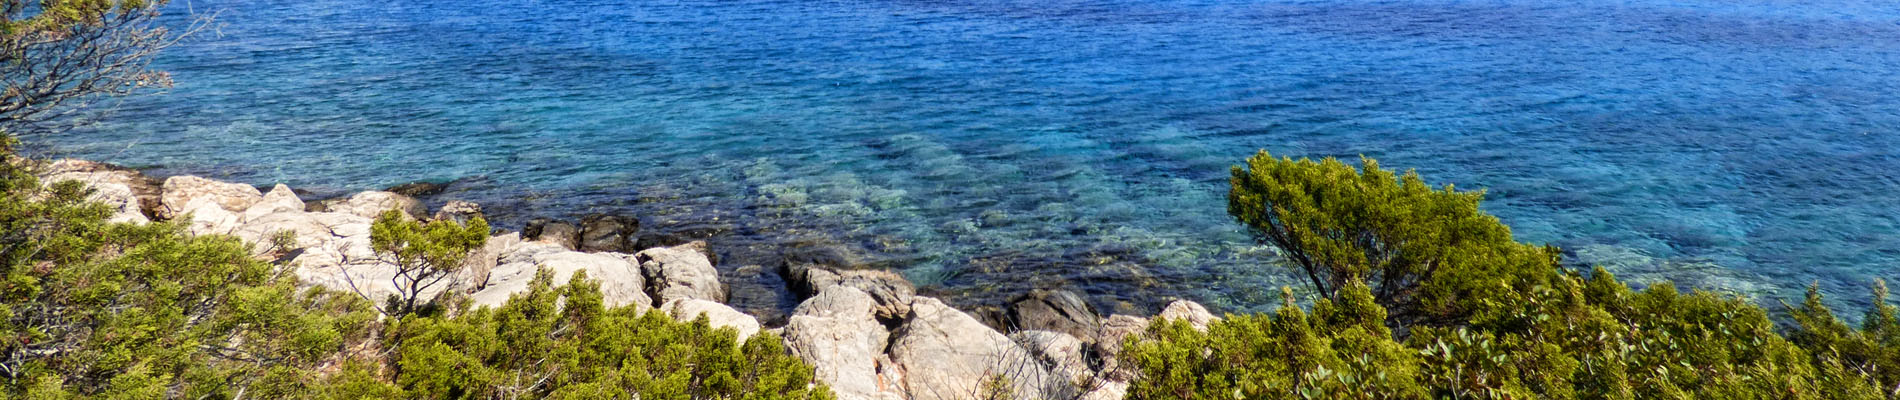 Blue waters of Alimia in Greece